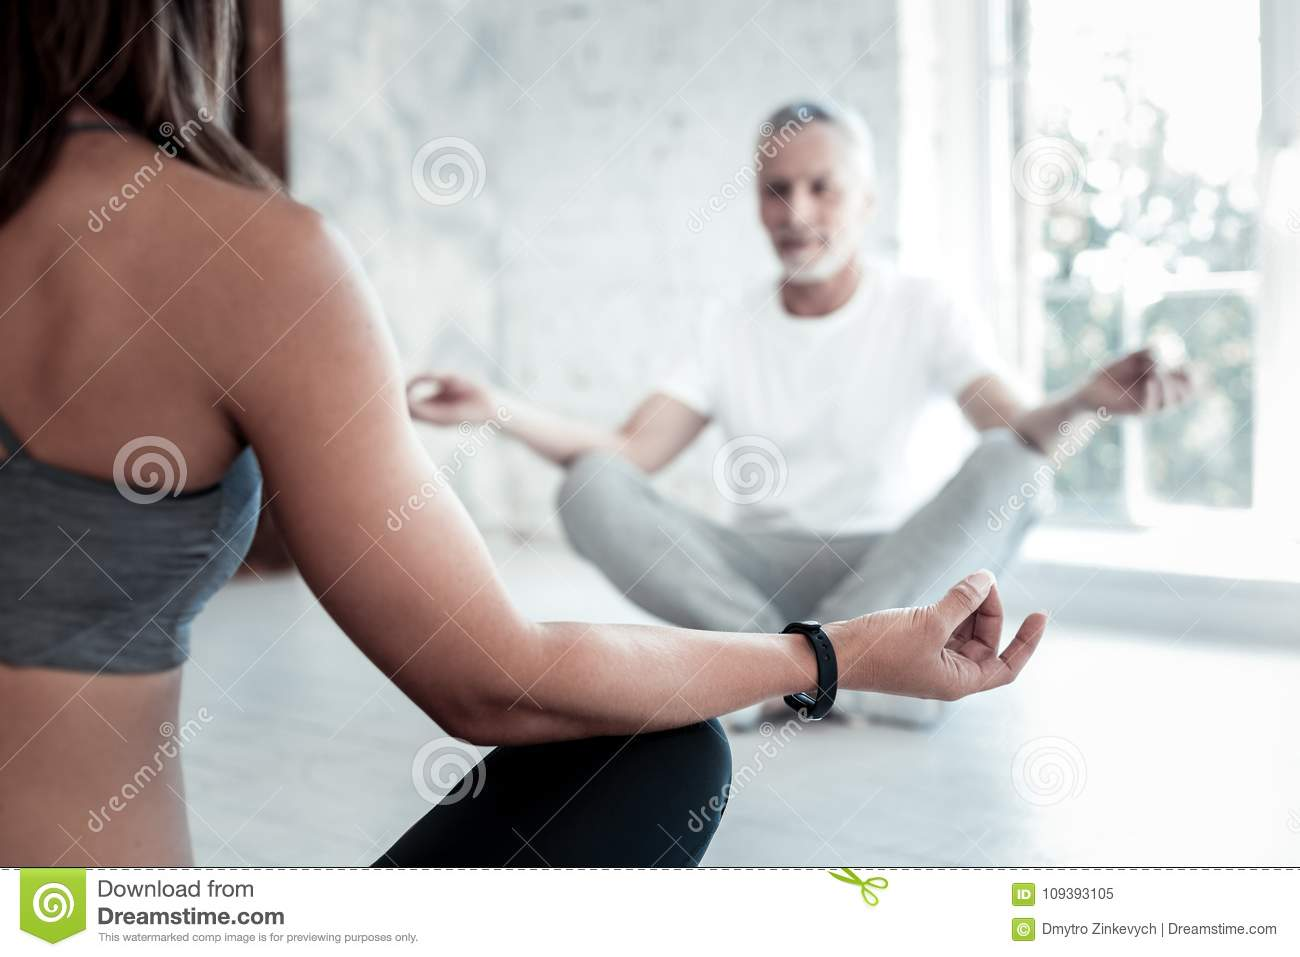 Selective focus on a young lady teaching mature men yoga while both sitting  on their mats and meditating in a yoga class.